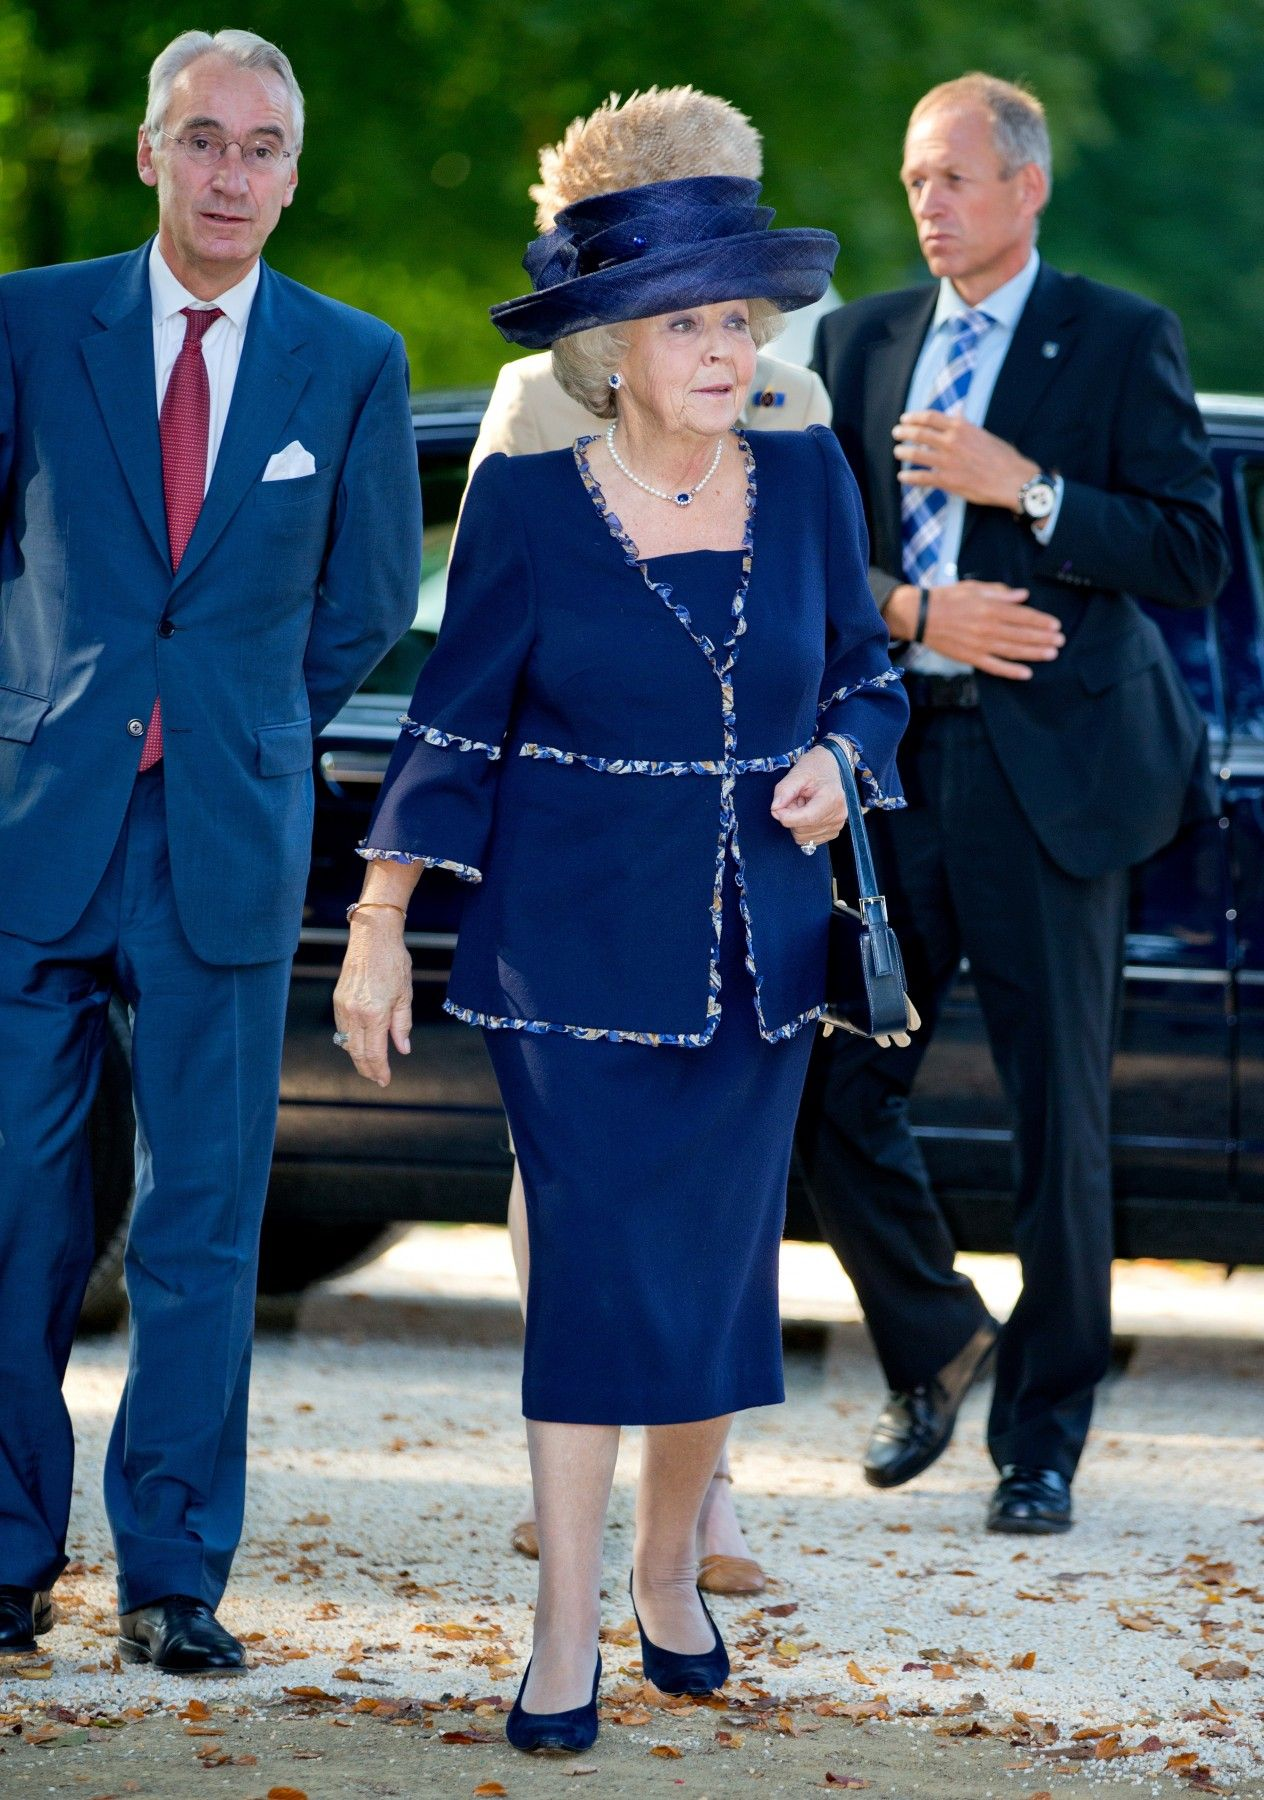 Princess Beatrix looked very elegant in her royal blue suit. She even wore shoes, jewellery, and a hat to match.